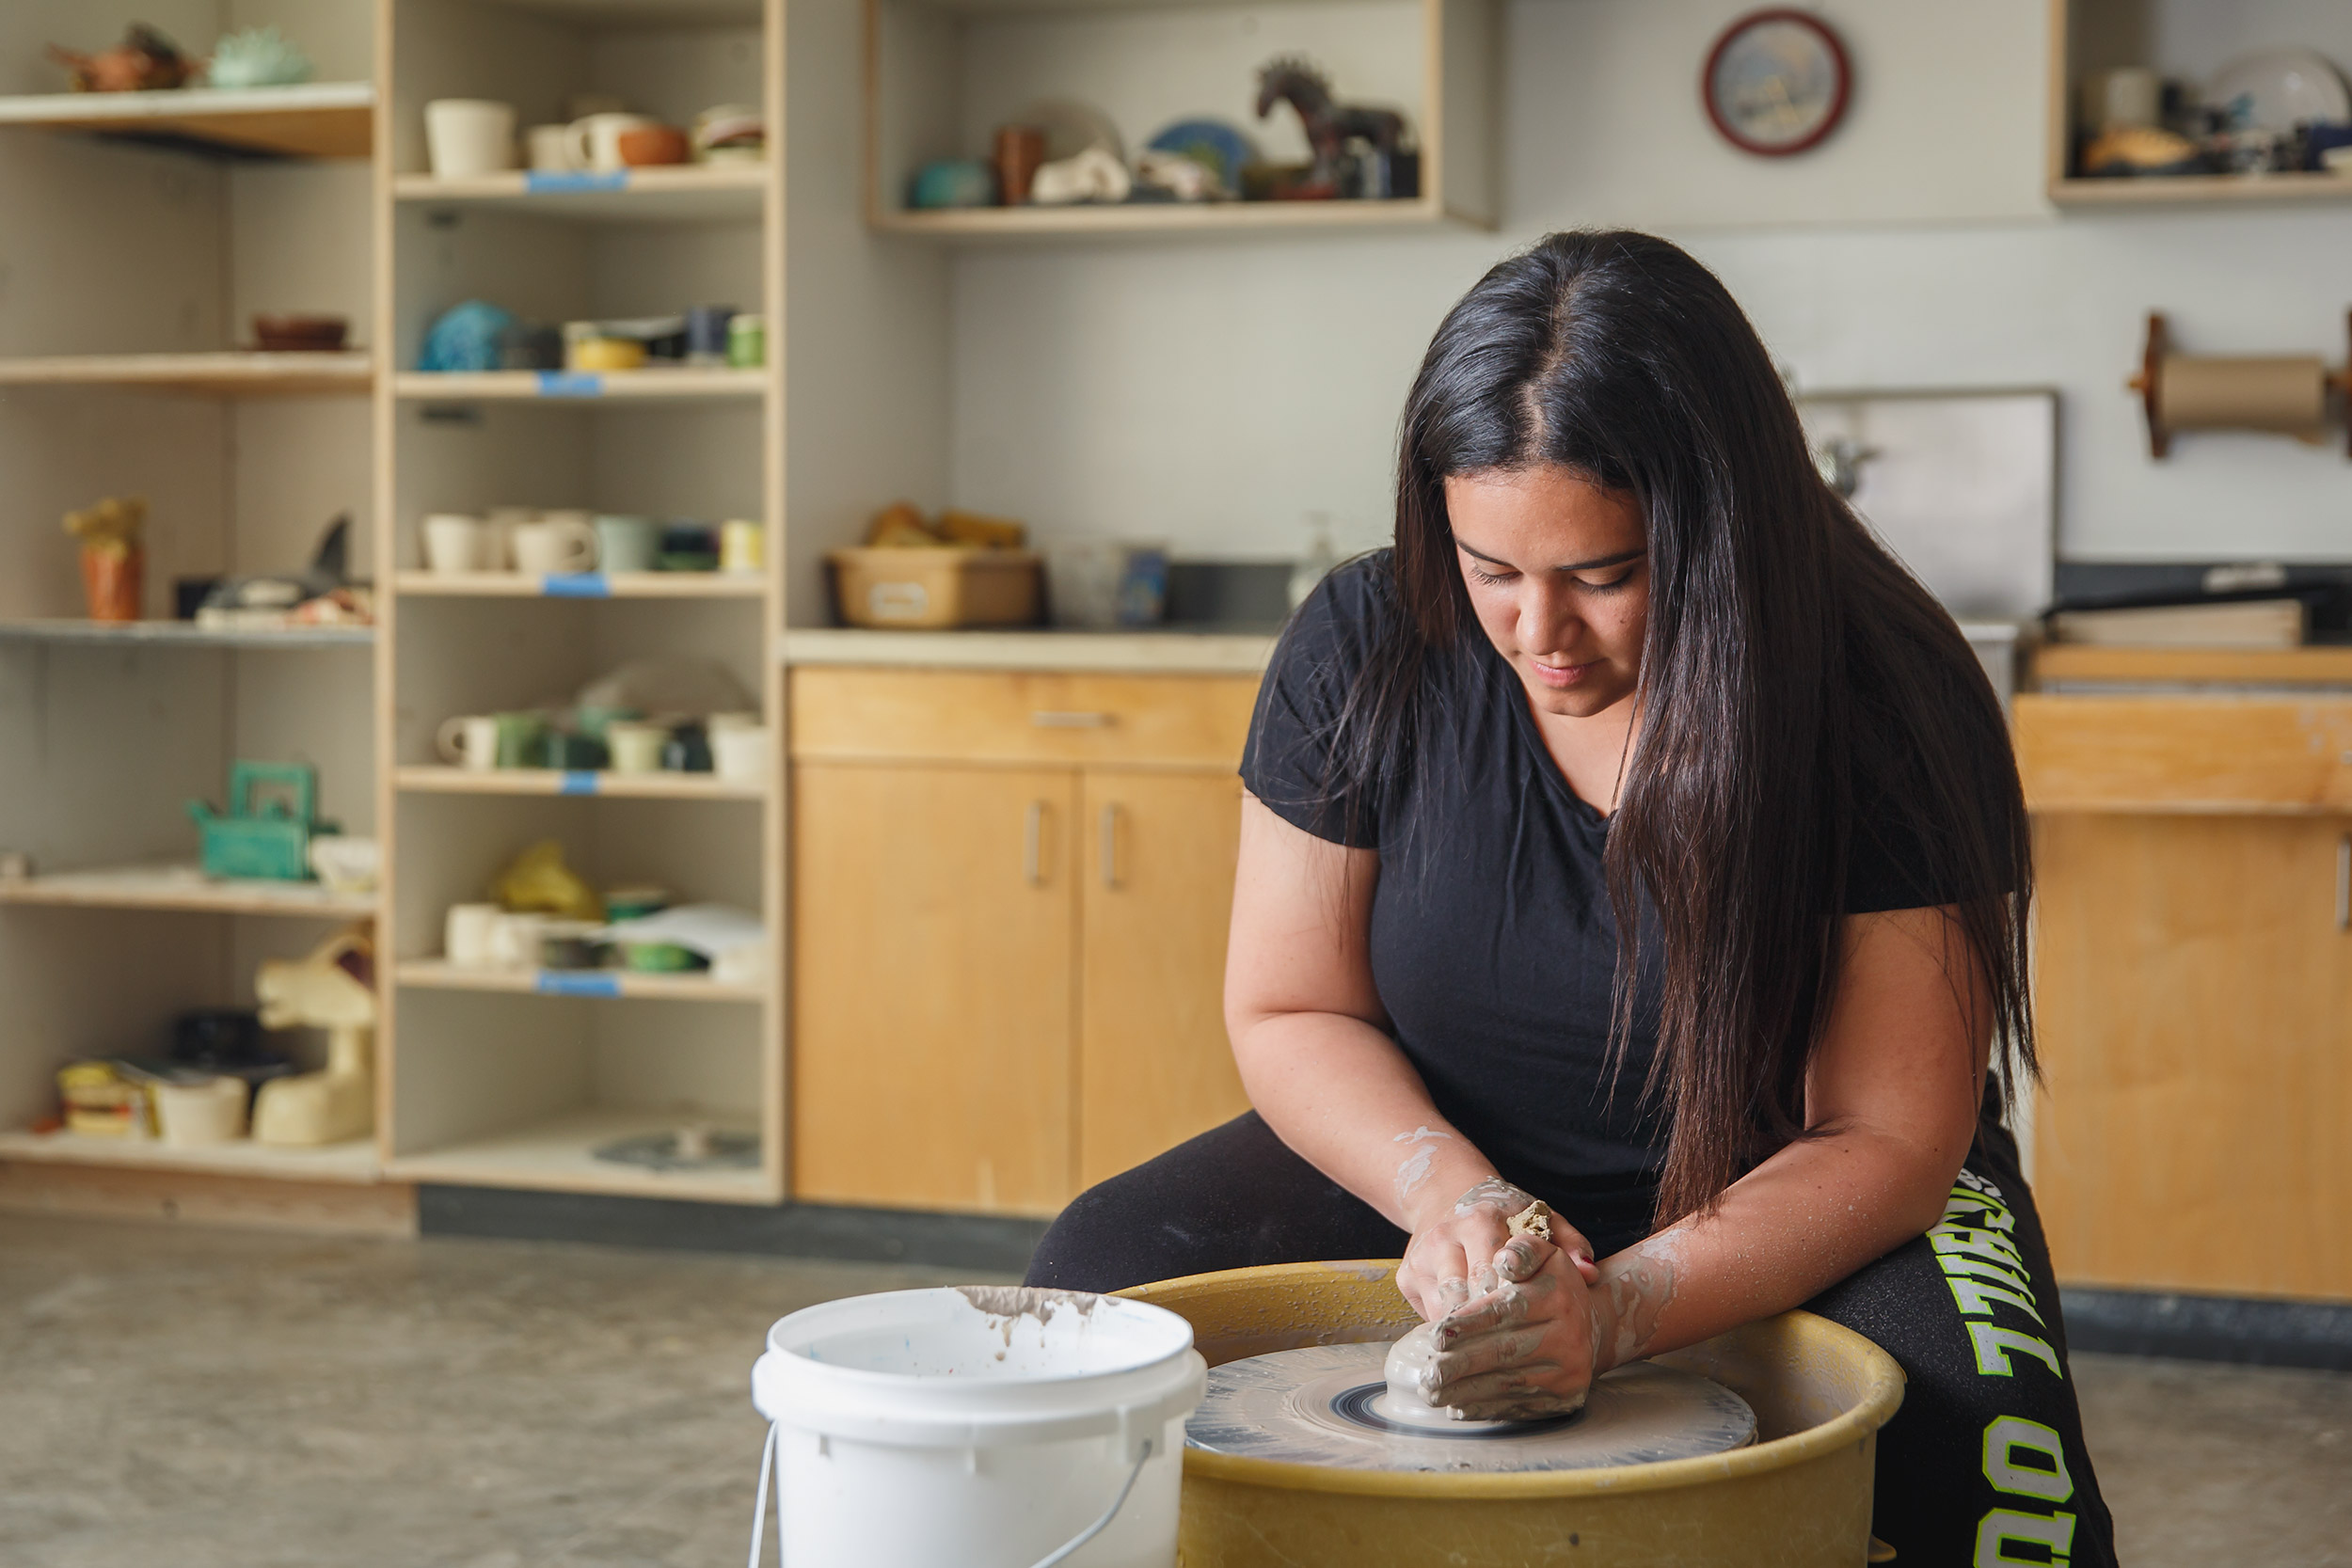 pottery_arts_education_photographer_higher_ed_by_matt_stanley_8176